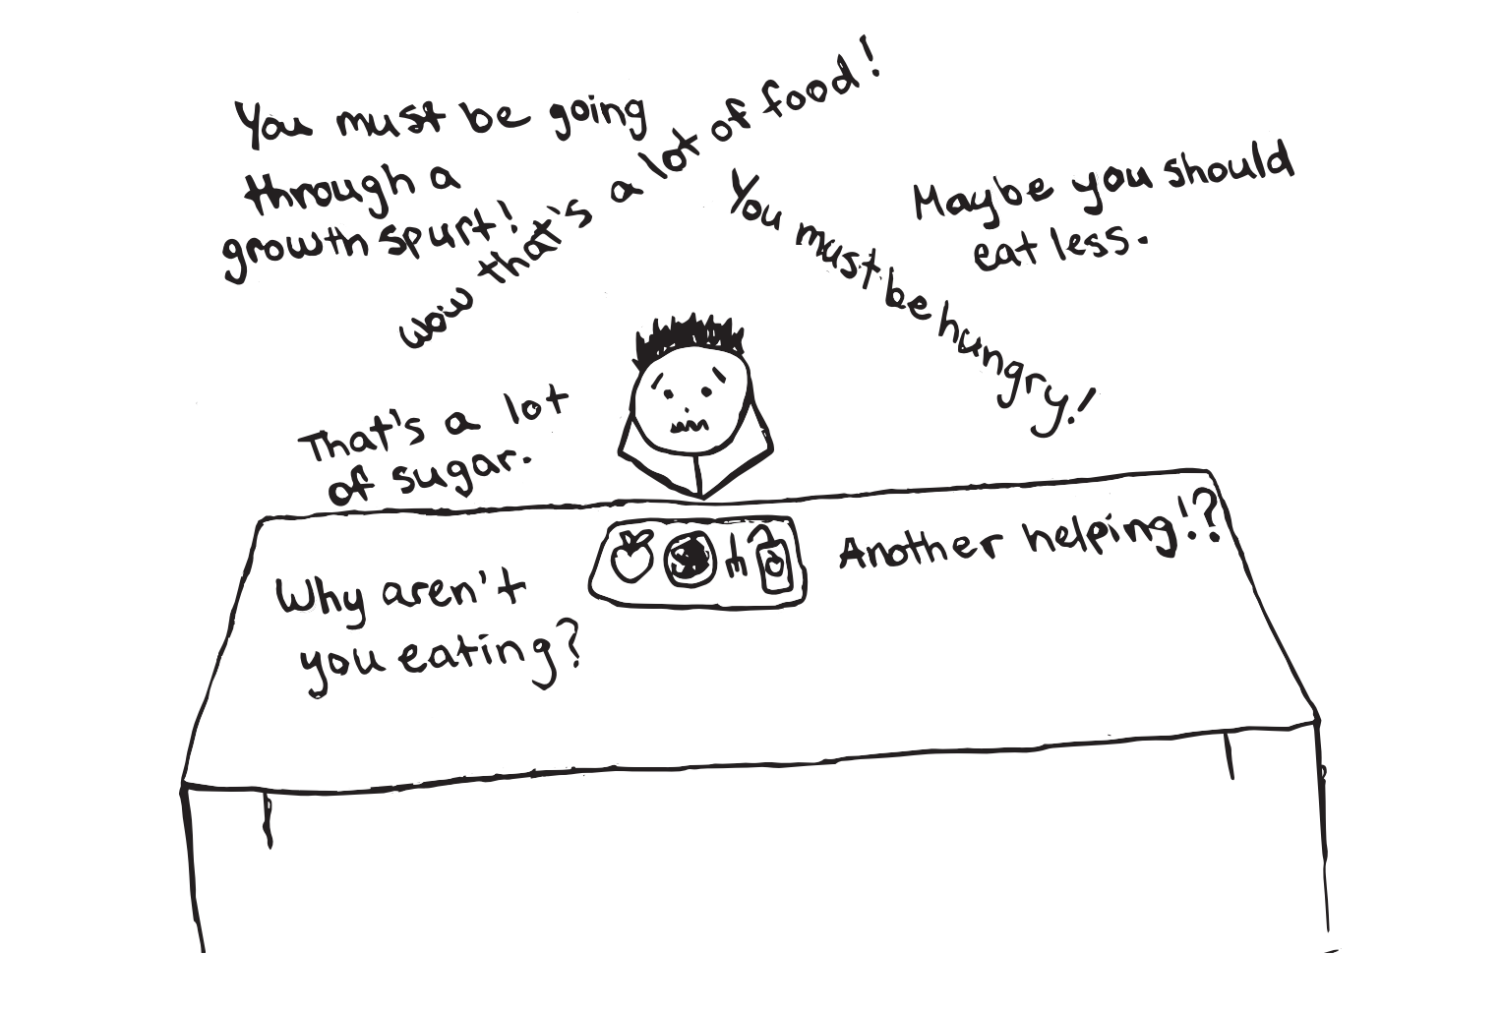 Constant jokes and questions about food creates a stressful environment for students.